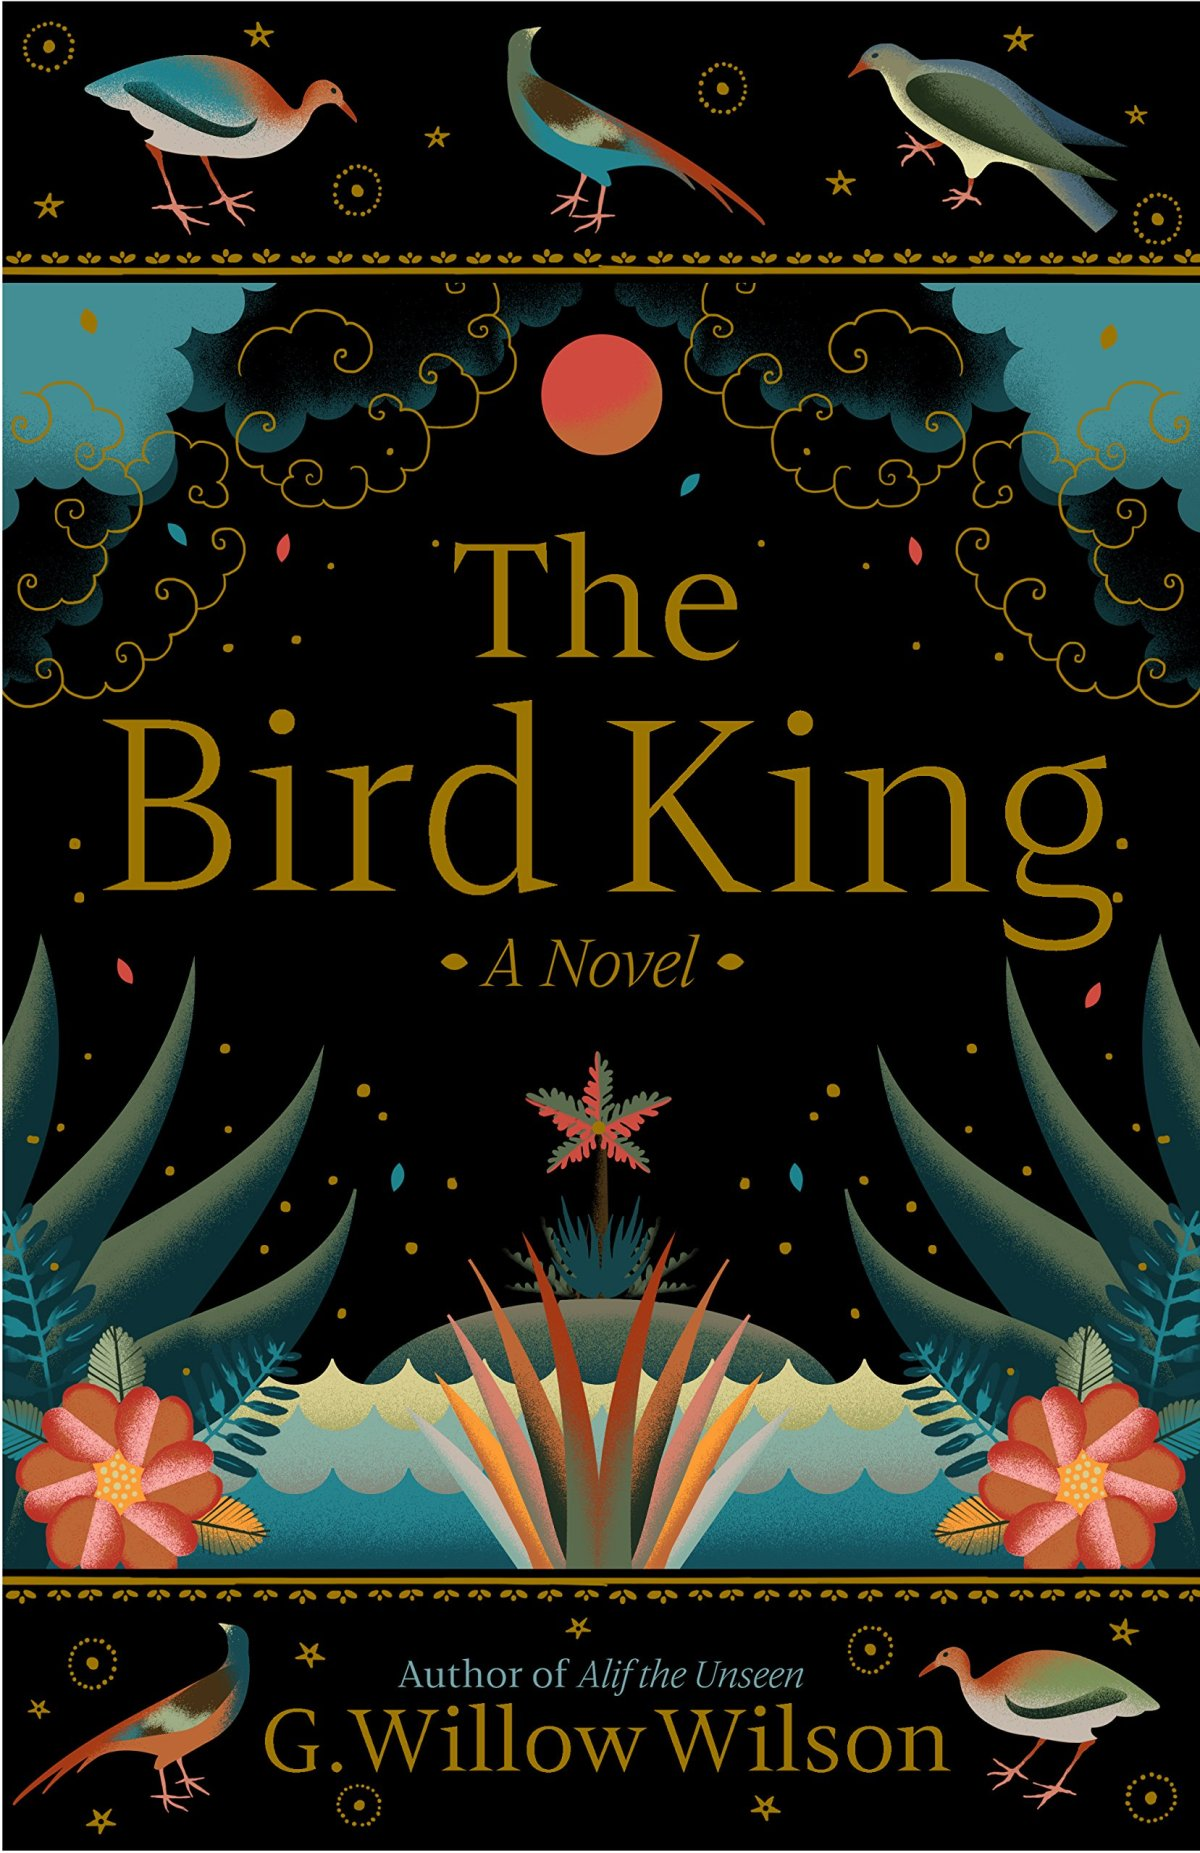 g willow wilson - the bird king